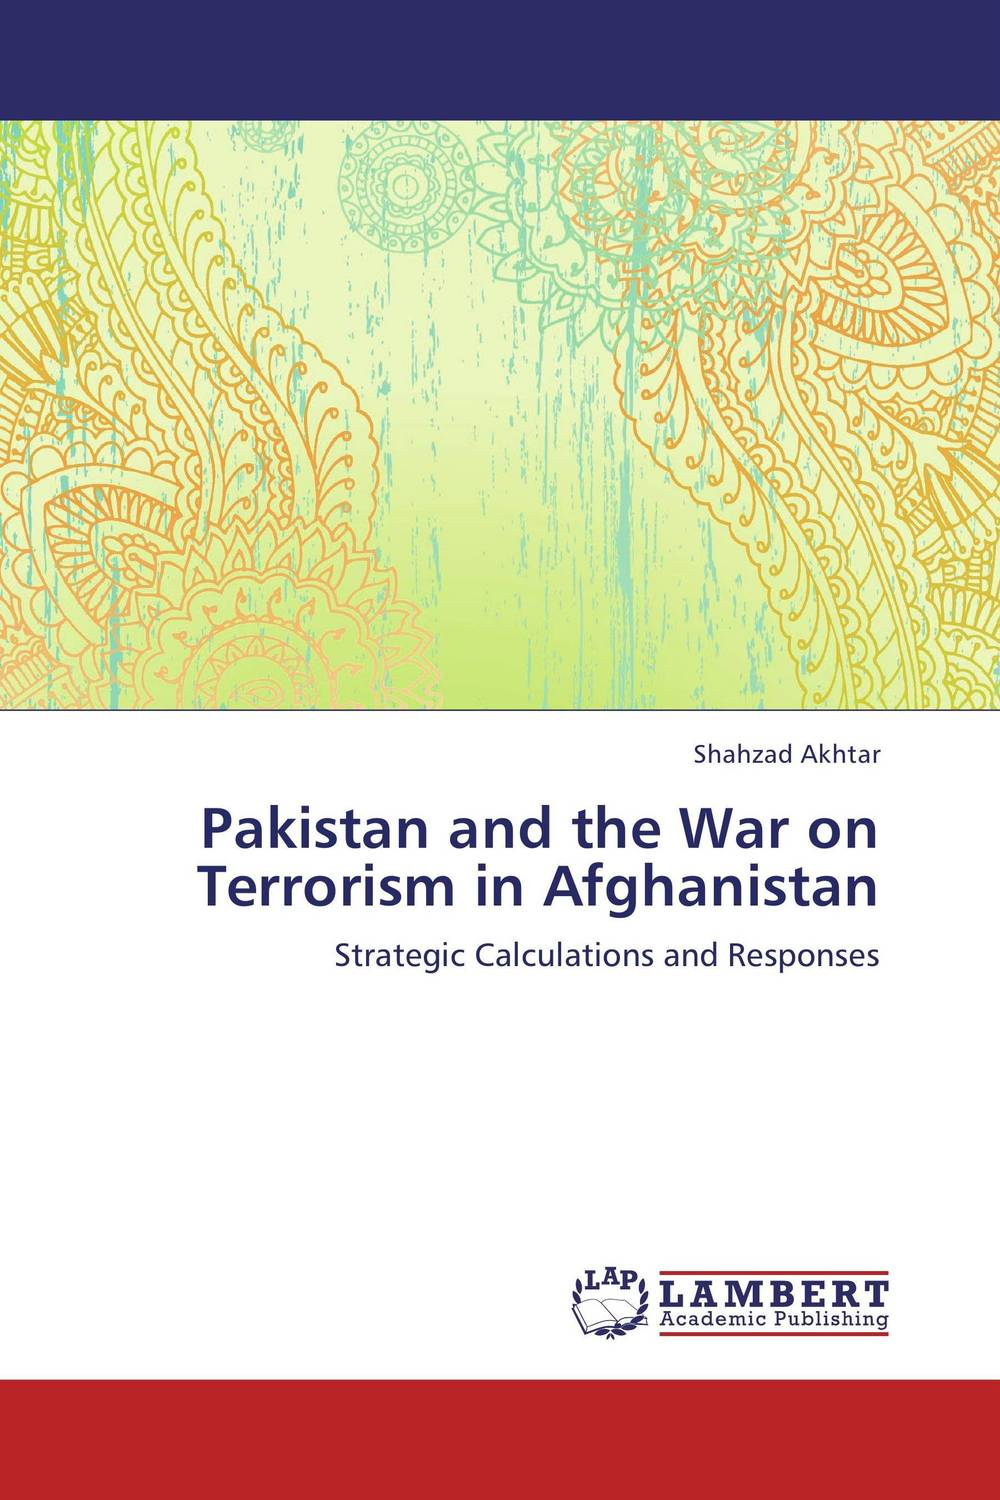 Pakistan and the War on Terrorism in Afghanistan uzma rehman sufi shrines and identity construction in pakistan